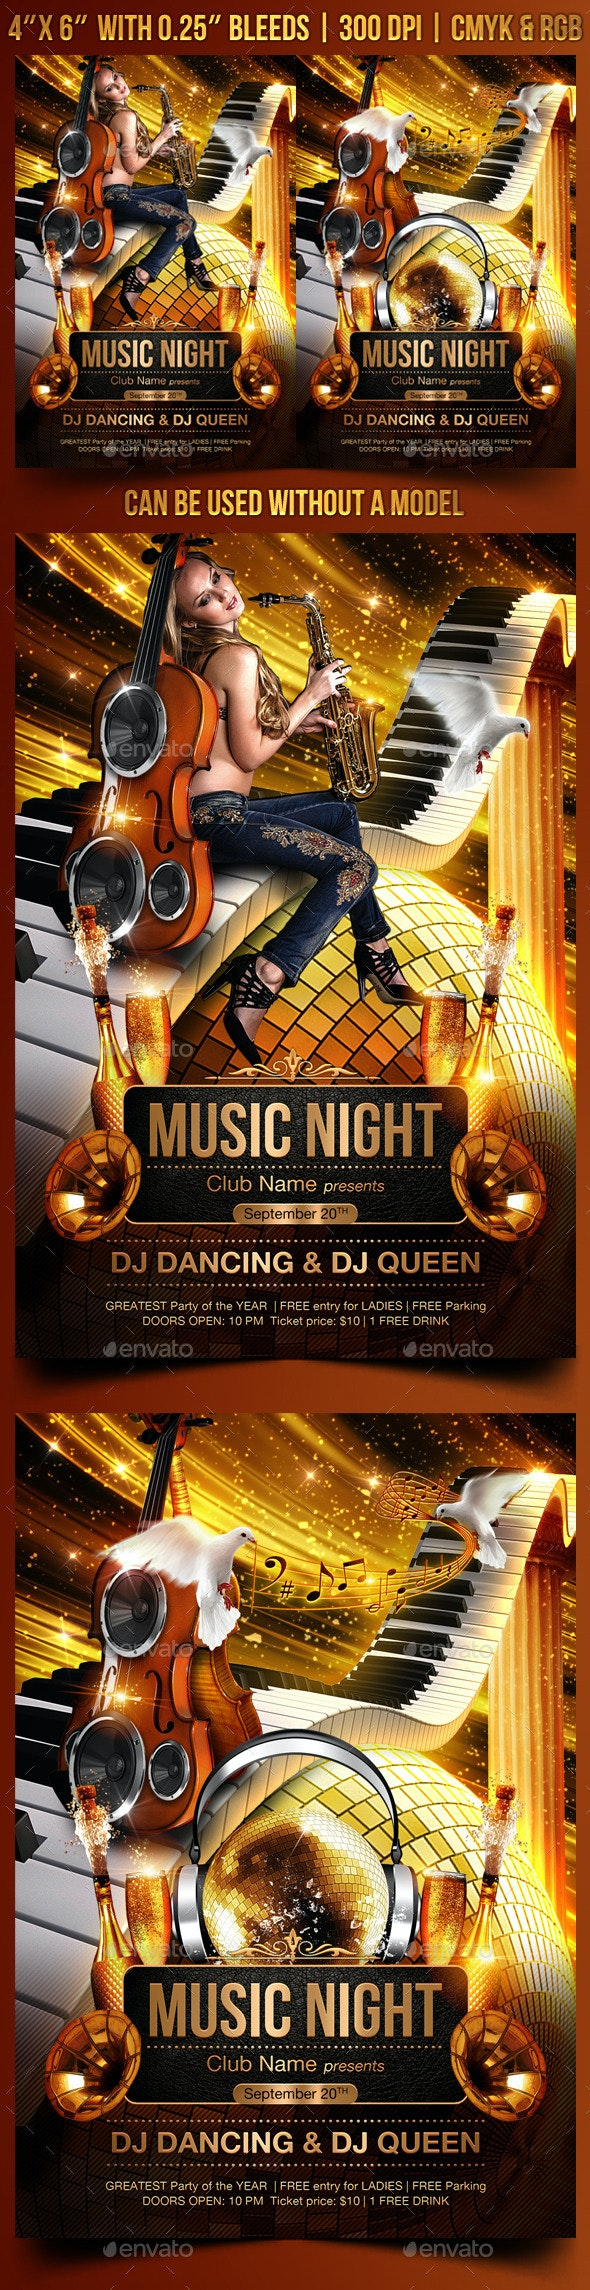 Music Night Flyer Template - Clubs & Parties Events